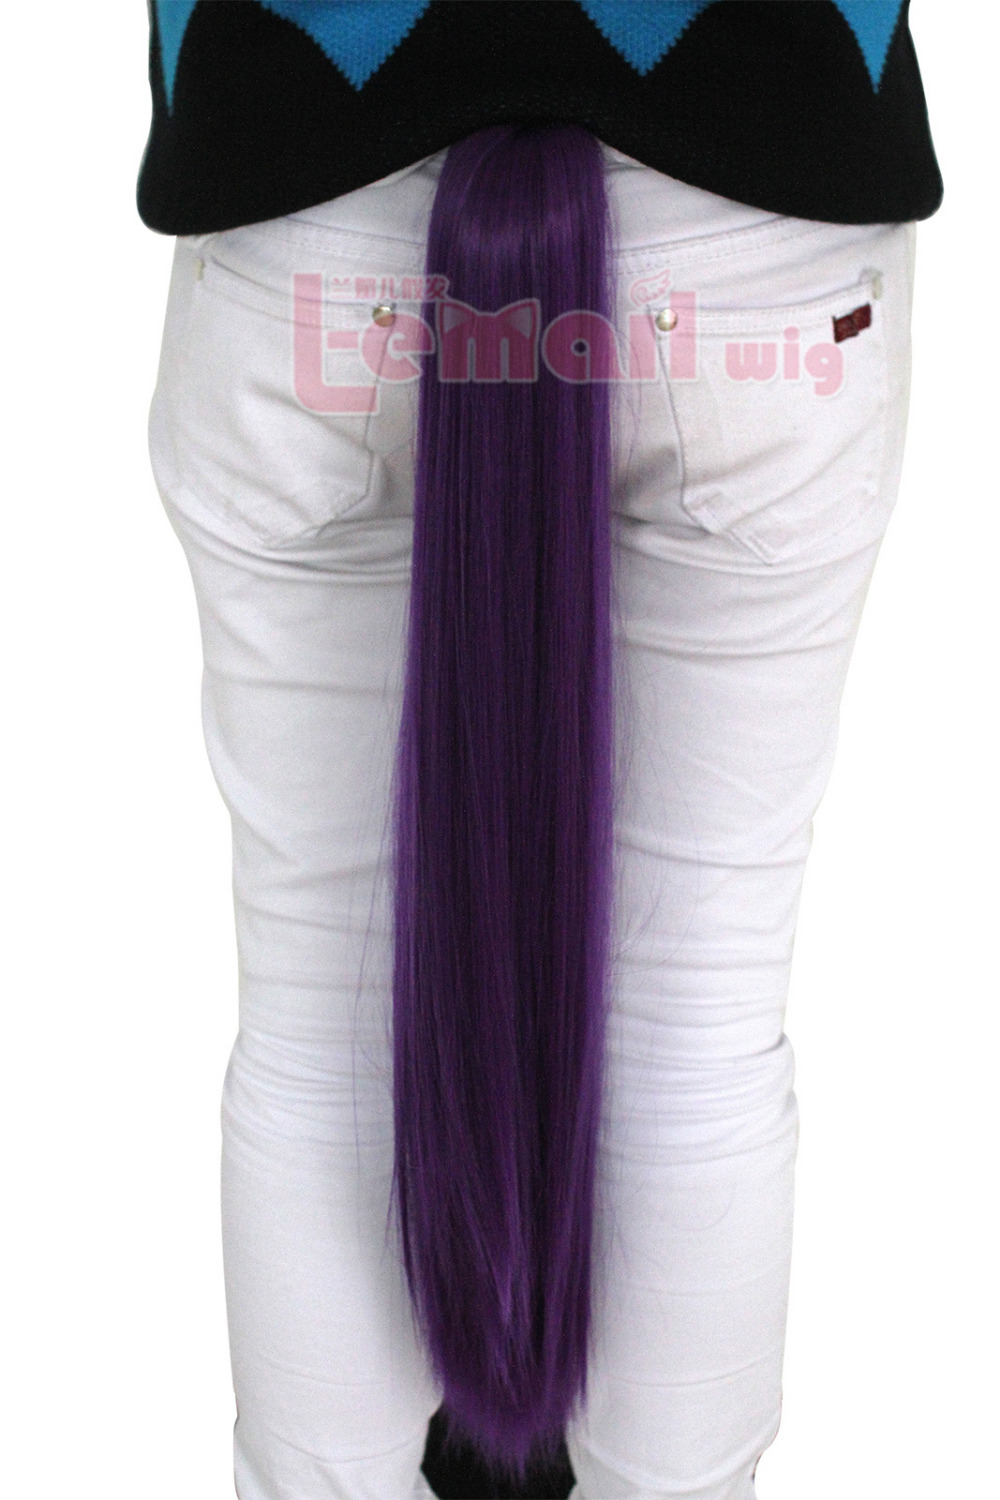 New cheap for women and girl  65cm long straight purple cosplay wigs claw on wigs Free Shipping pj29<br><br>Aliexpress